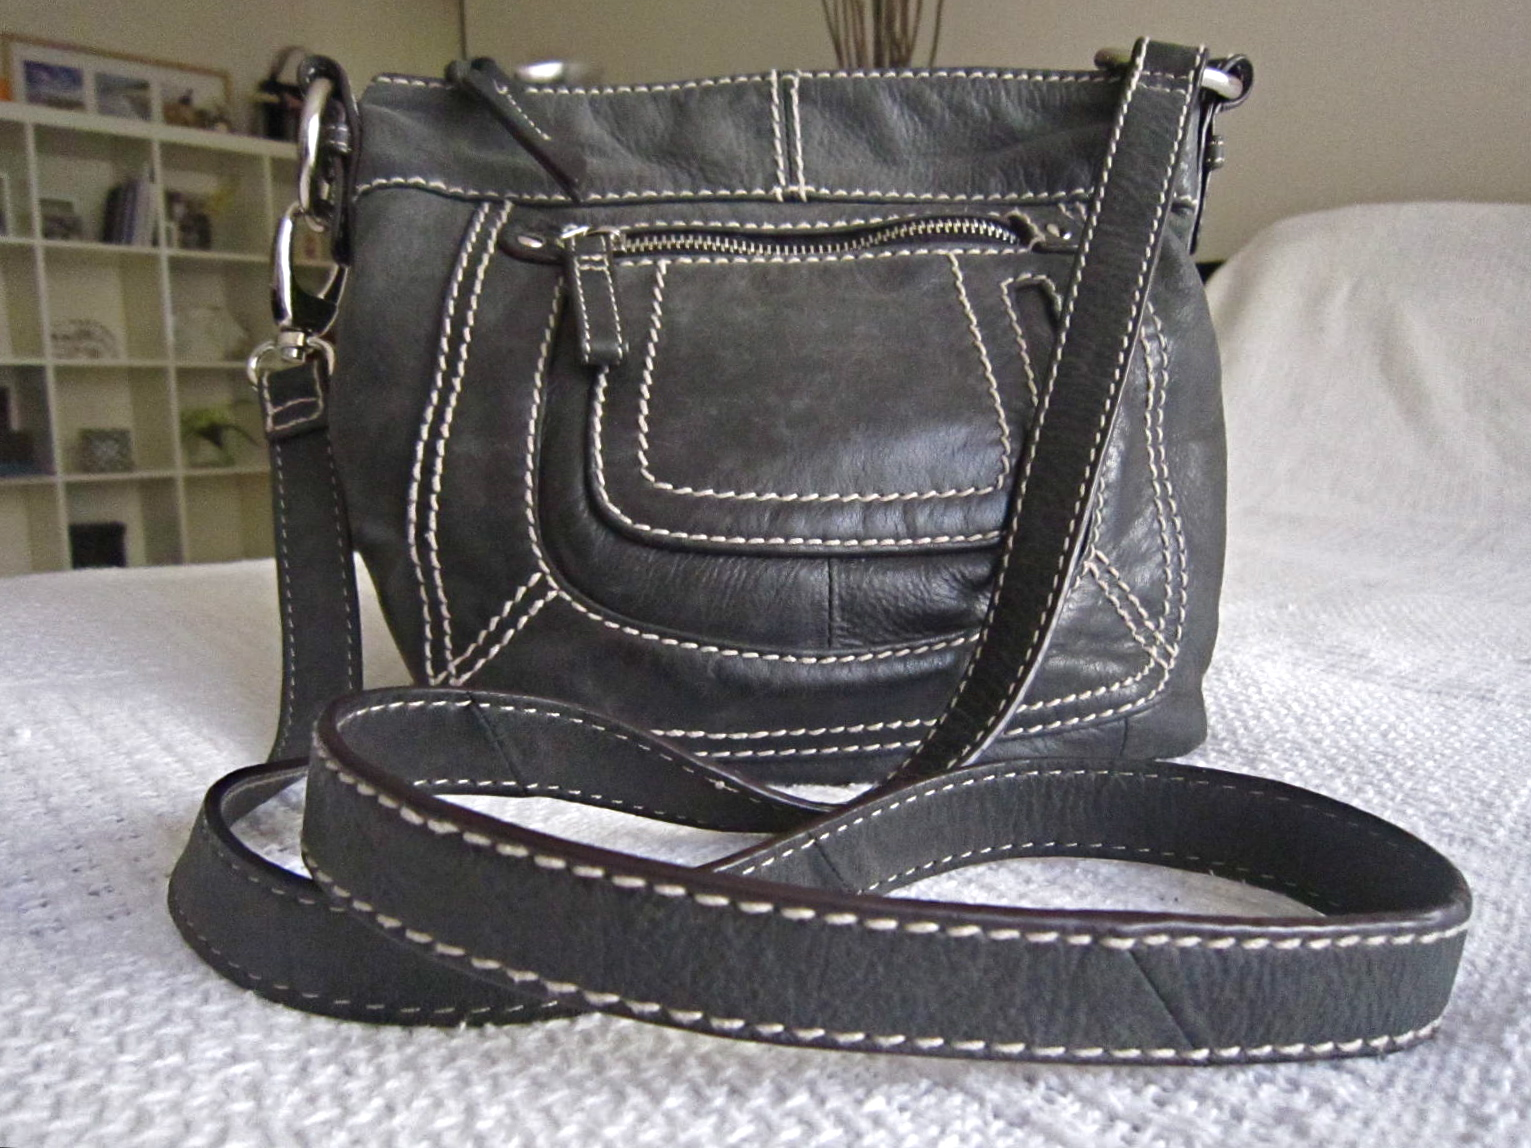 Danier Black Leather Crossbody Bag Luxurylana Boutique f09f1aaa13b02